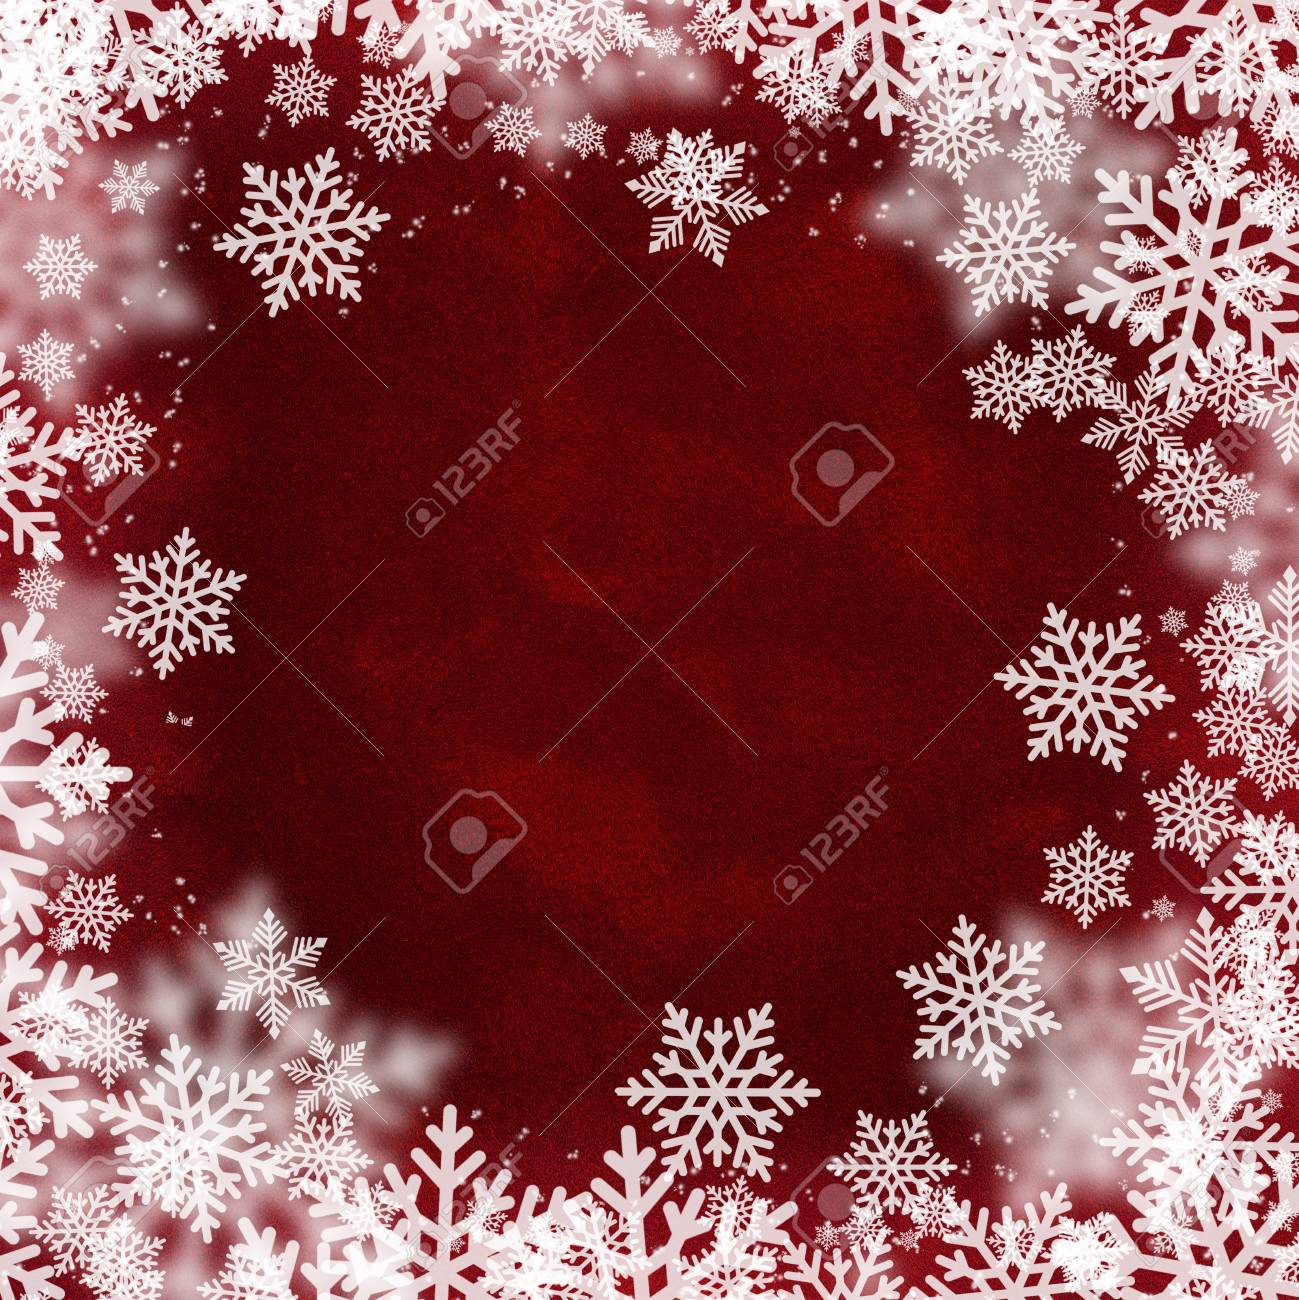 Snowflakes Pattern On Red Velvet Fabric Textured Winter Holidays Stock Photo Picture And Royalty Free Image Image 66394680